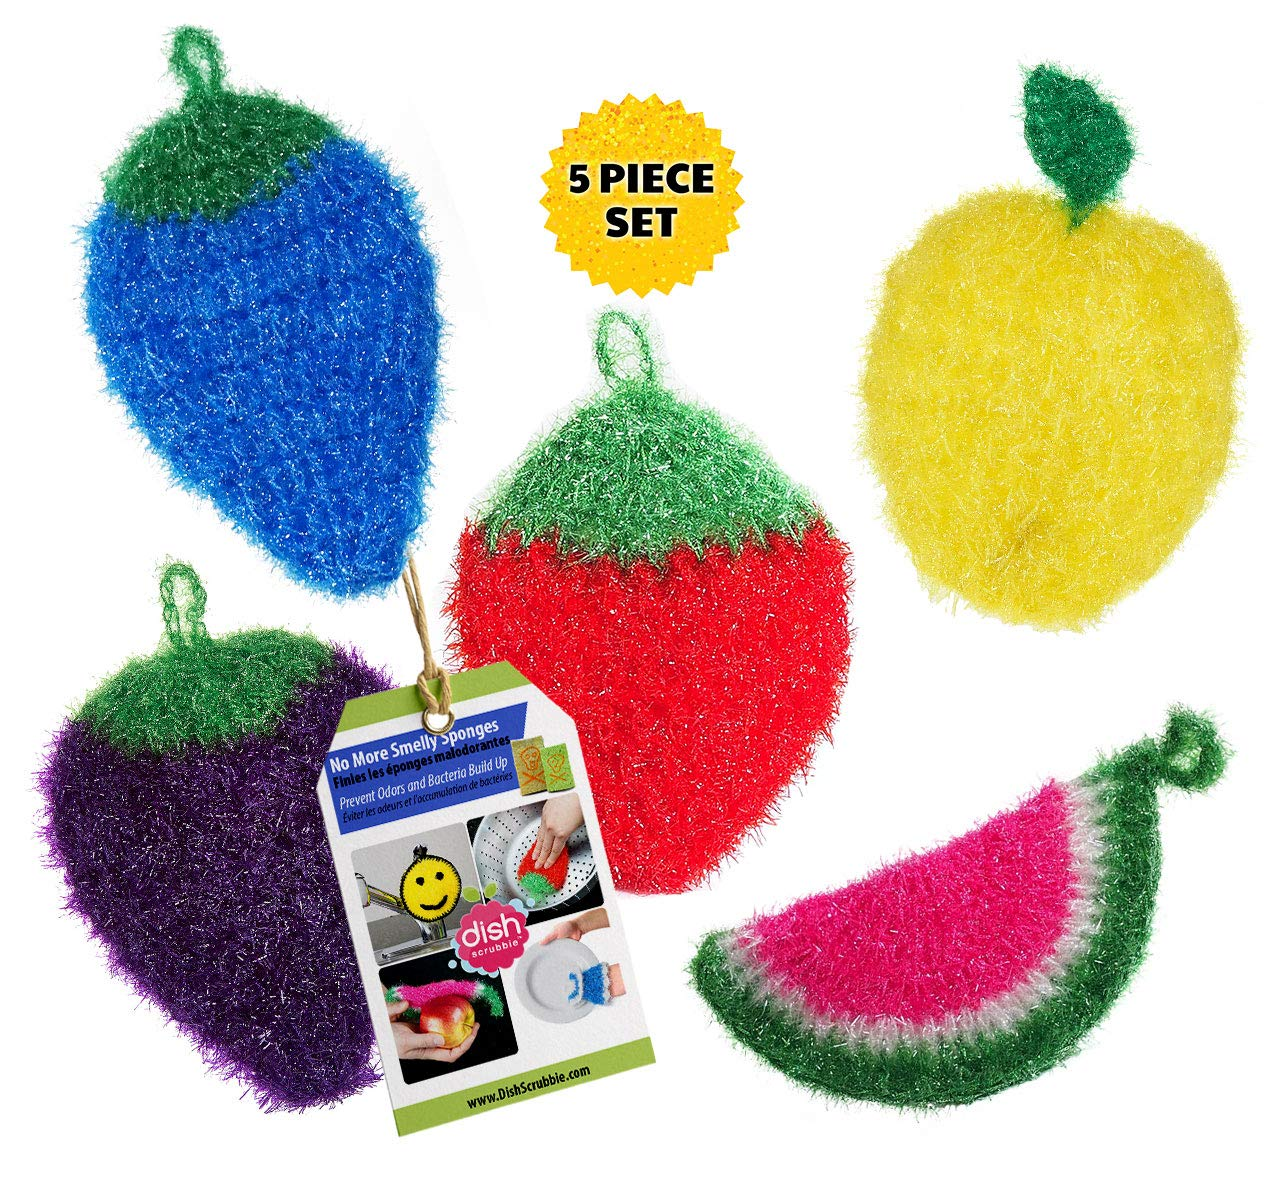 Dish Scrubber for Dishwashing (3 PK Mix) | Net Cloth Scrubber / Washcloth / Dish Rag Cloths | No Mildew Odor Smell like Sponge or Dishcloths | Stocking Stuffers for Women Mom Dish Scrubbie DSAA1001